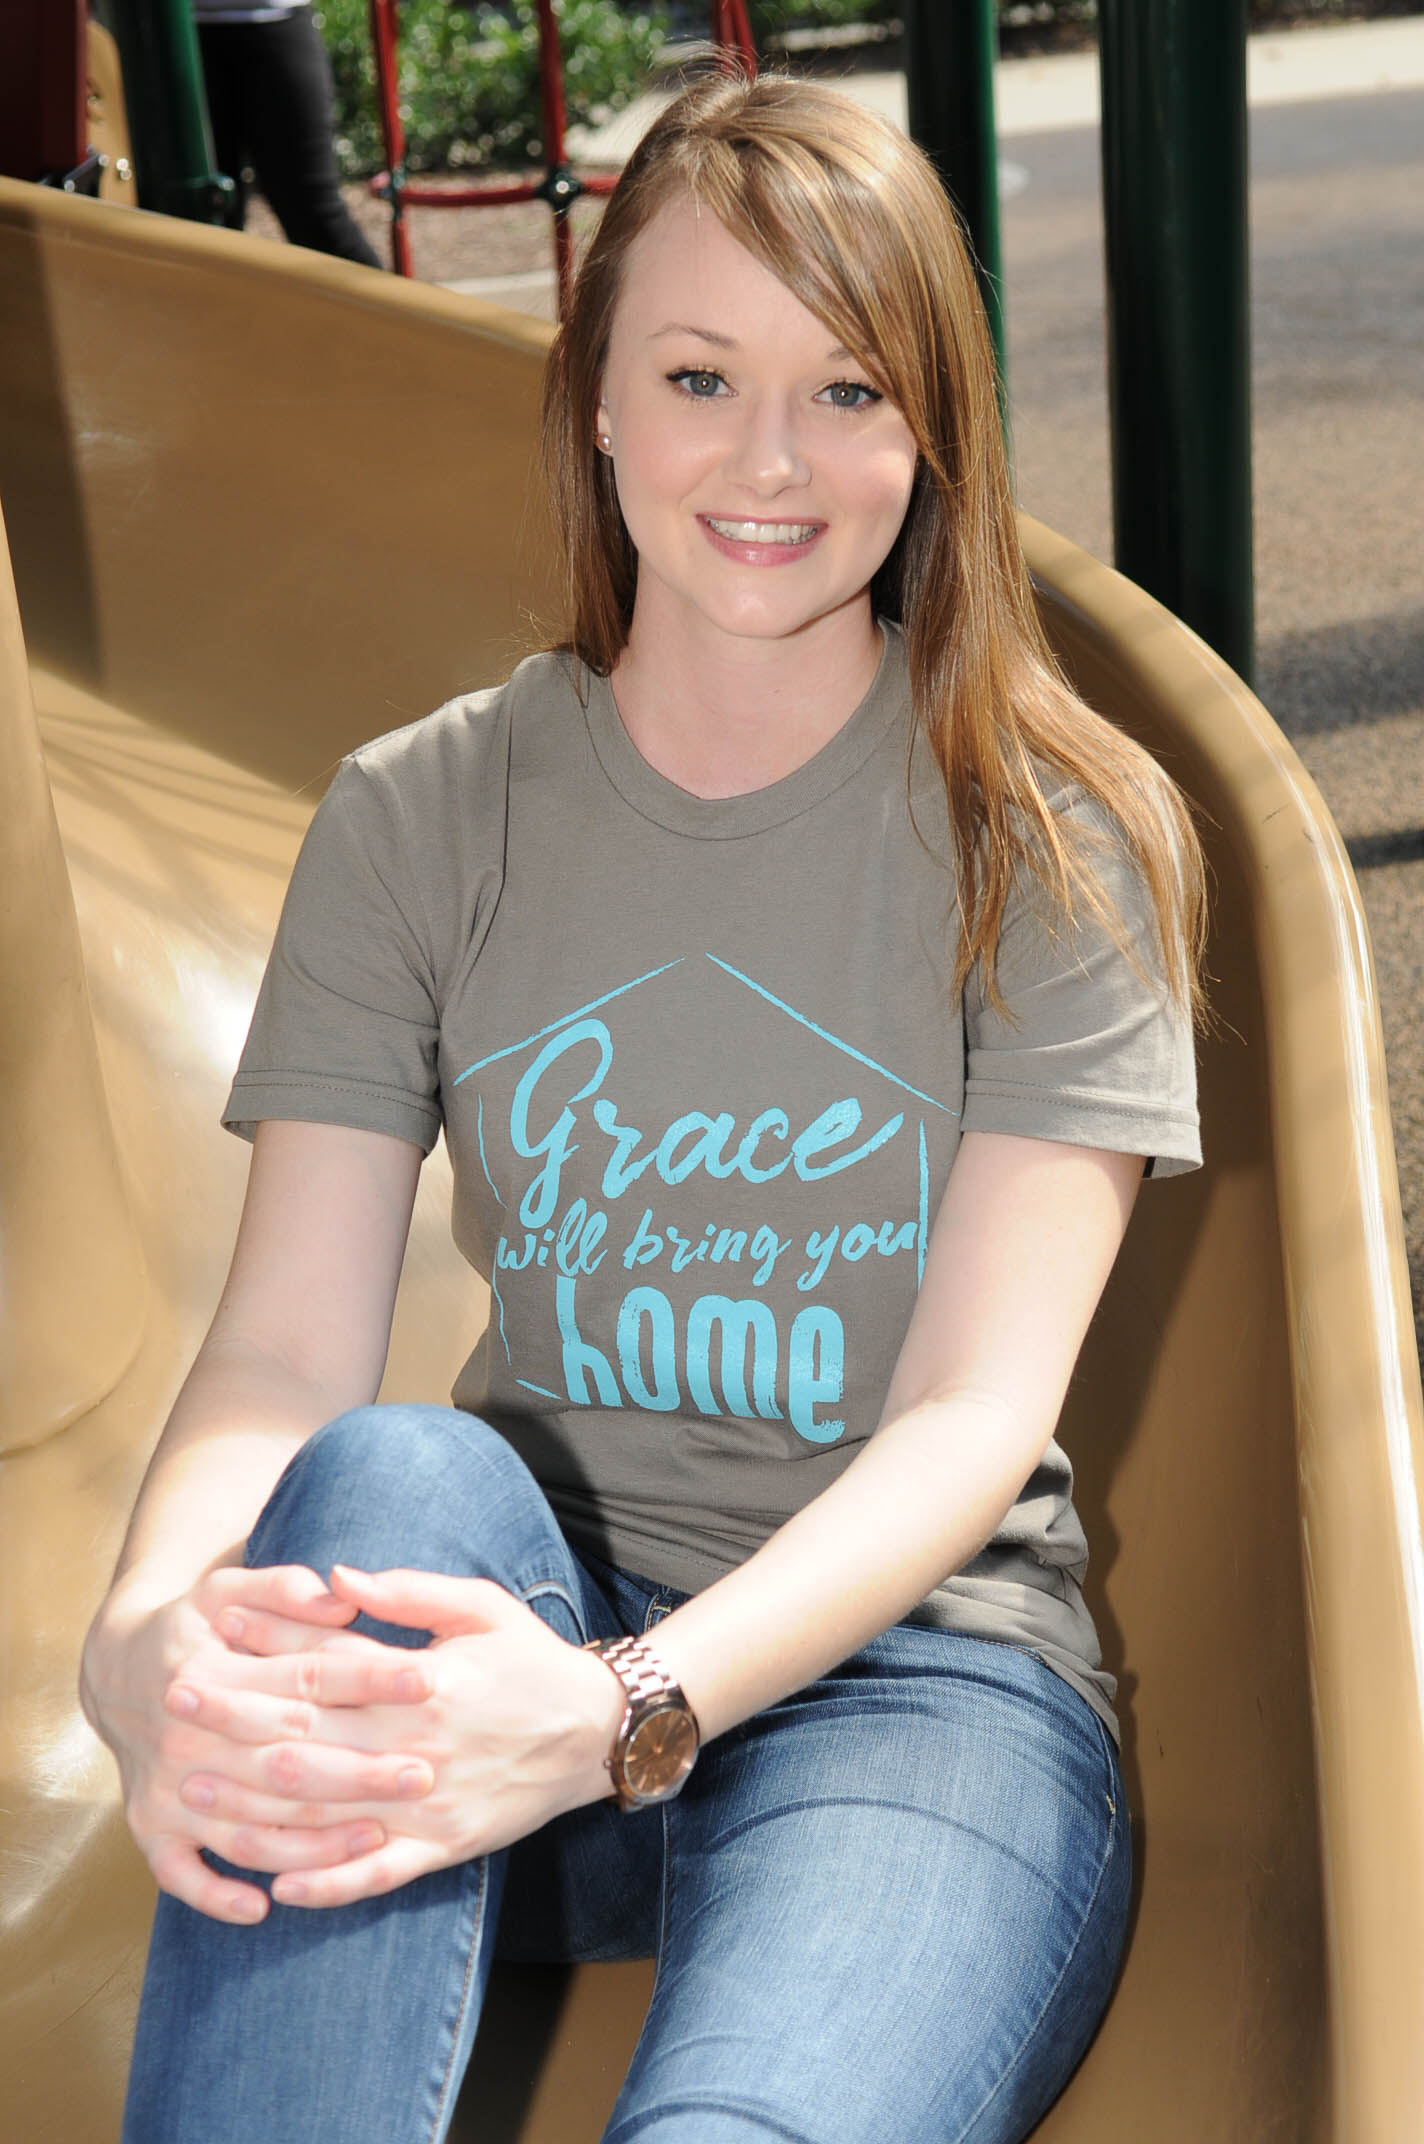 Grace-Bring-You-Home-Slide-tshirt